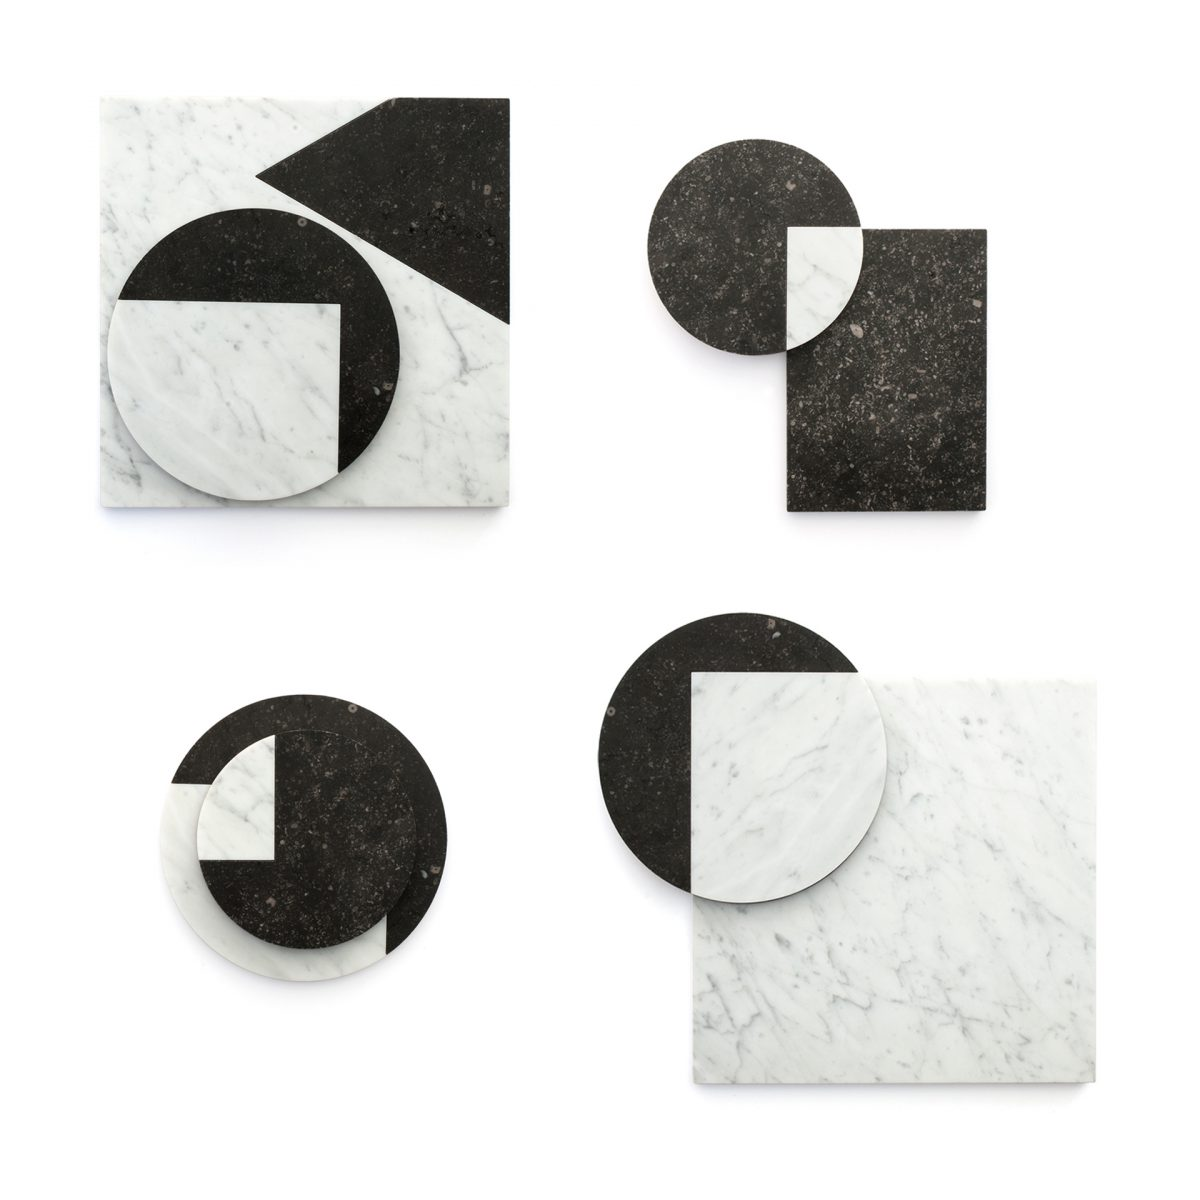 VENN VIEW marble set total geometric shapes Jorrit Taekema